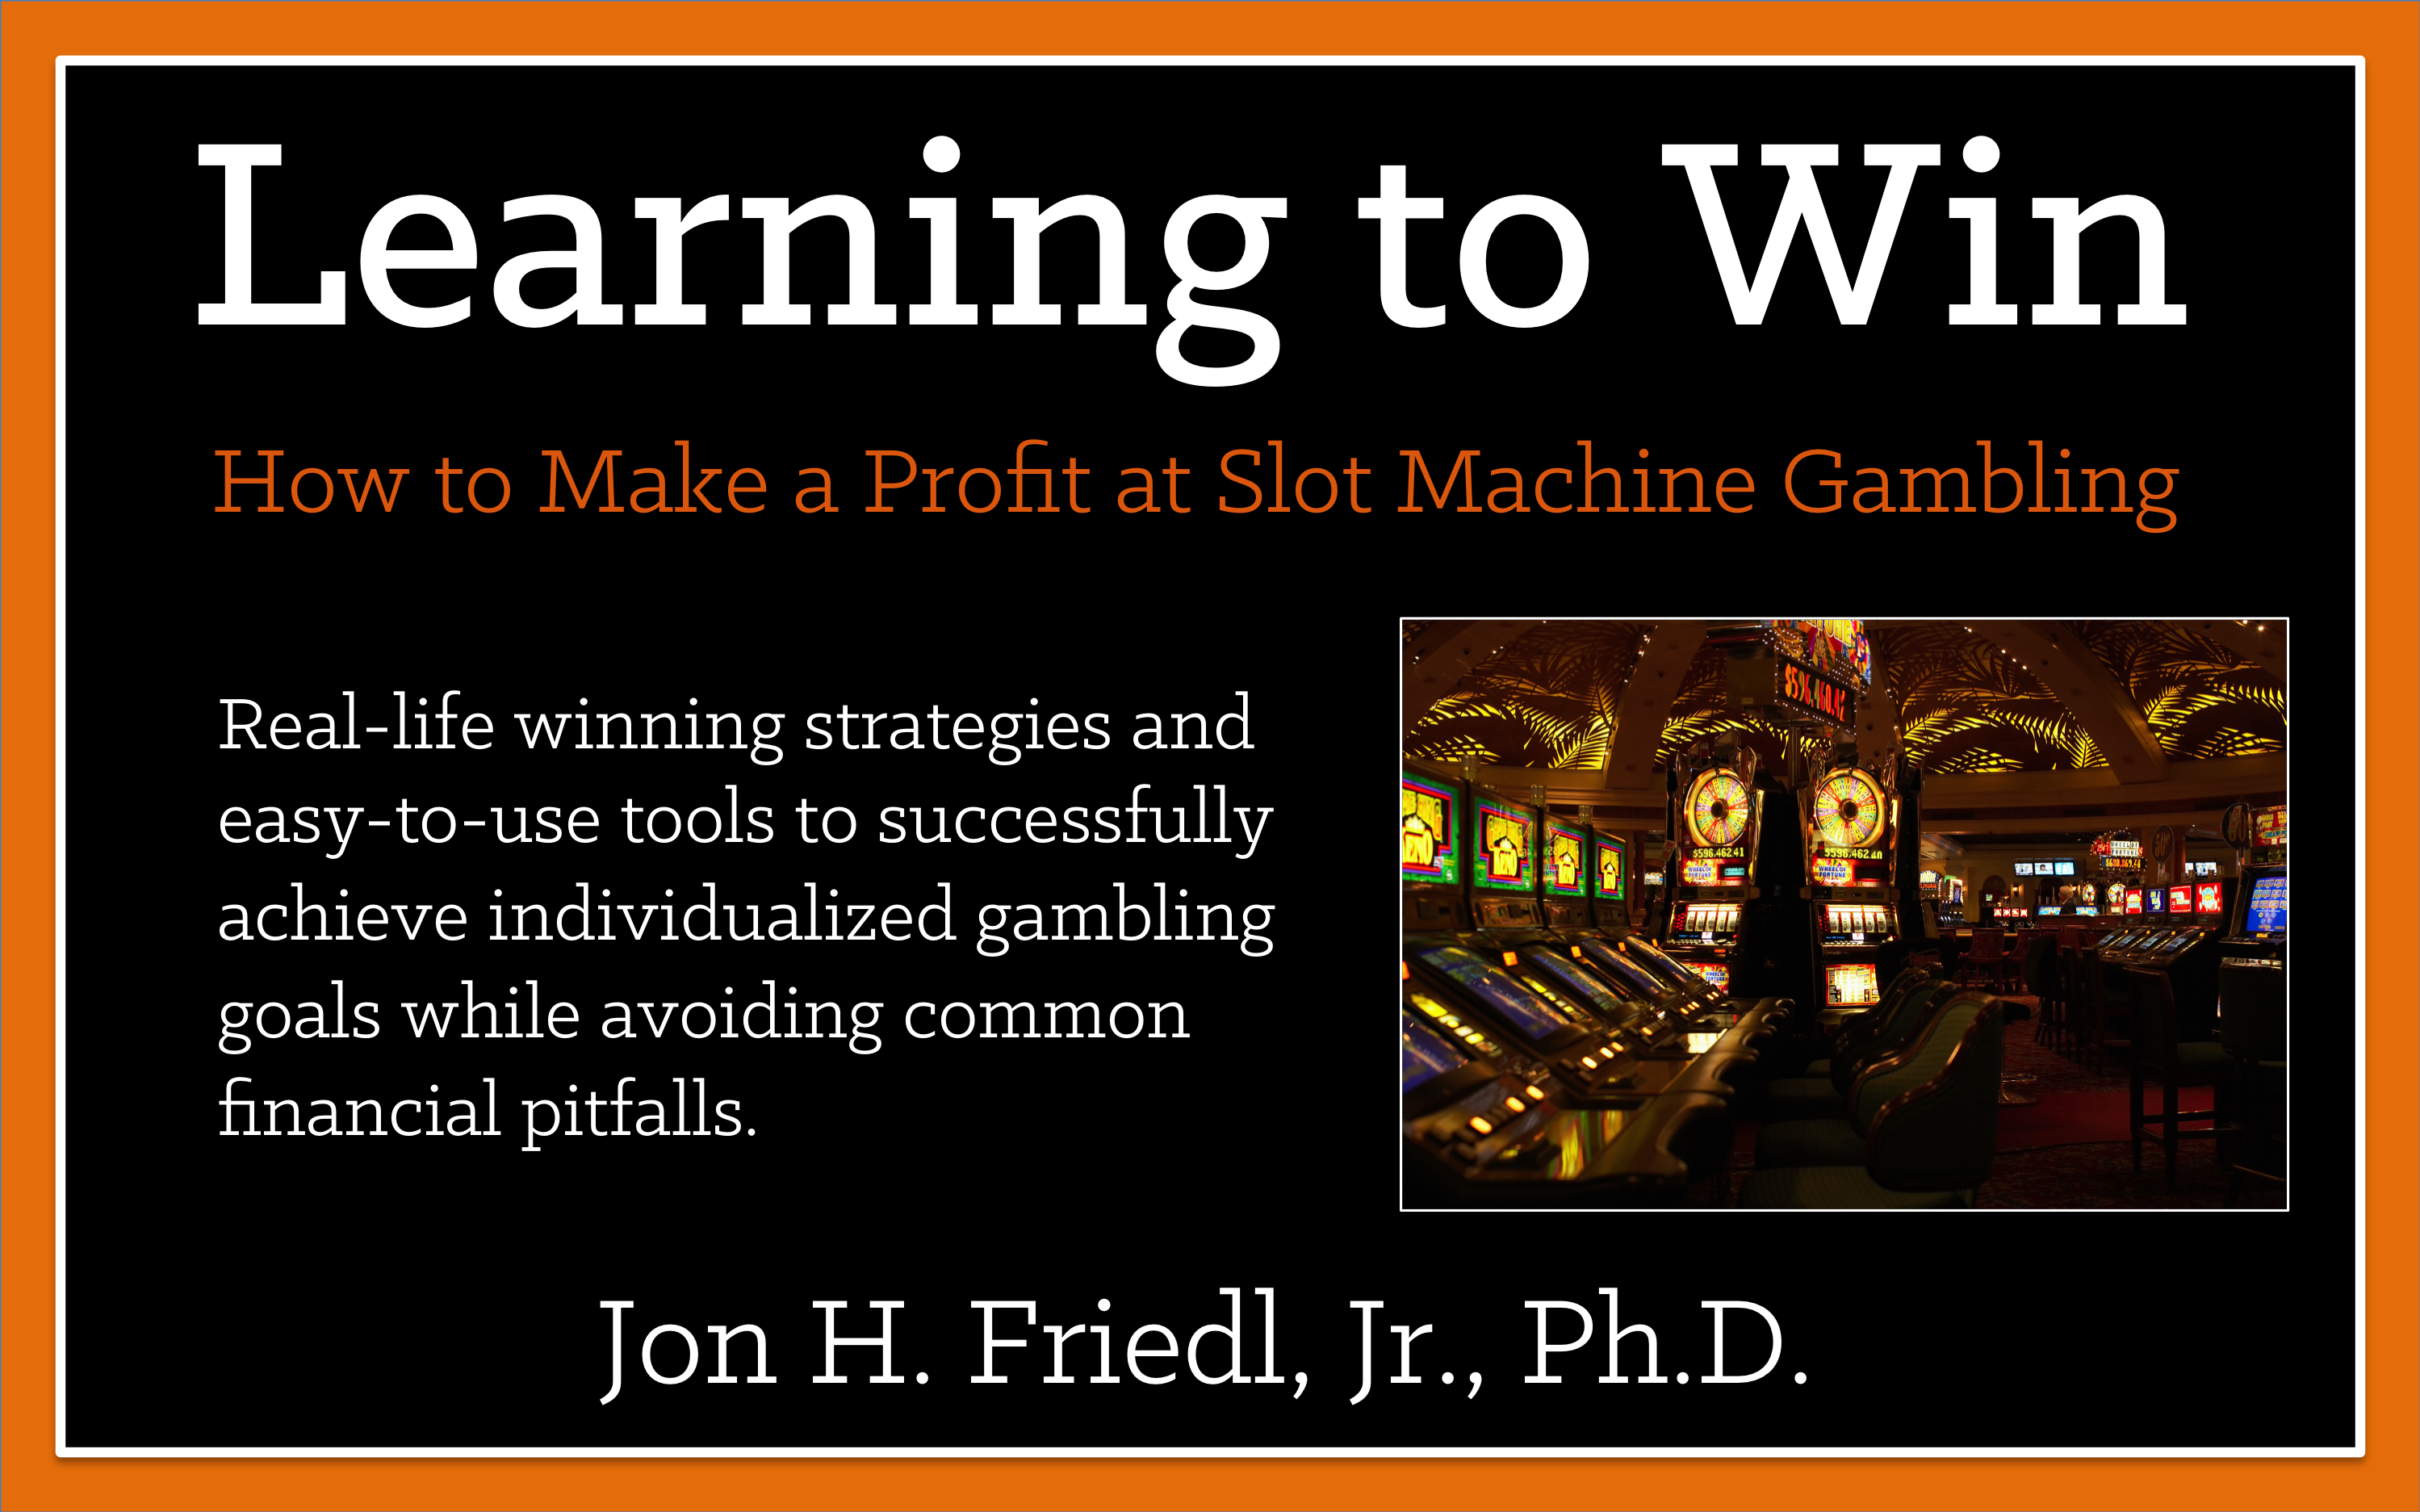 Learning To Win: Making A Profit at Slots Machine Gambling pdf ebook and What to Expect from Professor Slots in 2018.